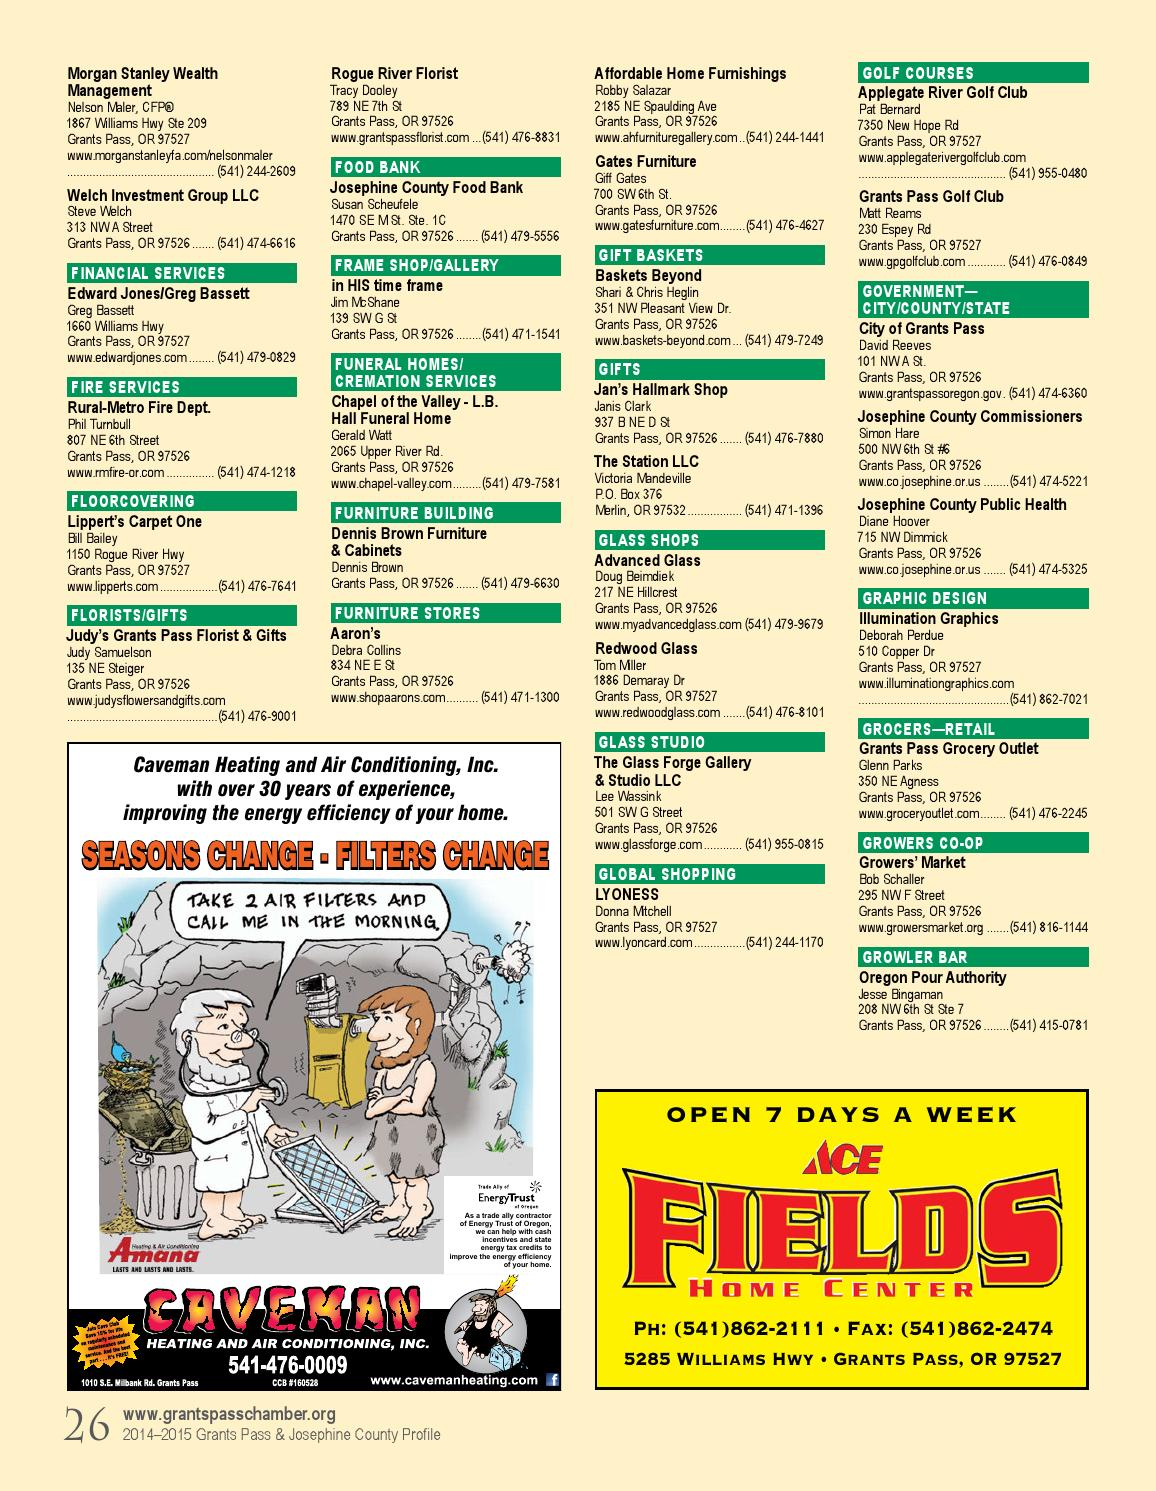 Grants Pass Profile 2014 2015 By MAP Publications   Issuu